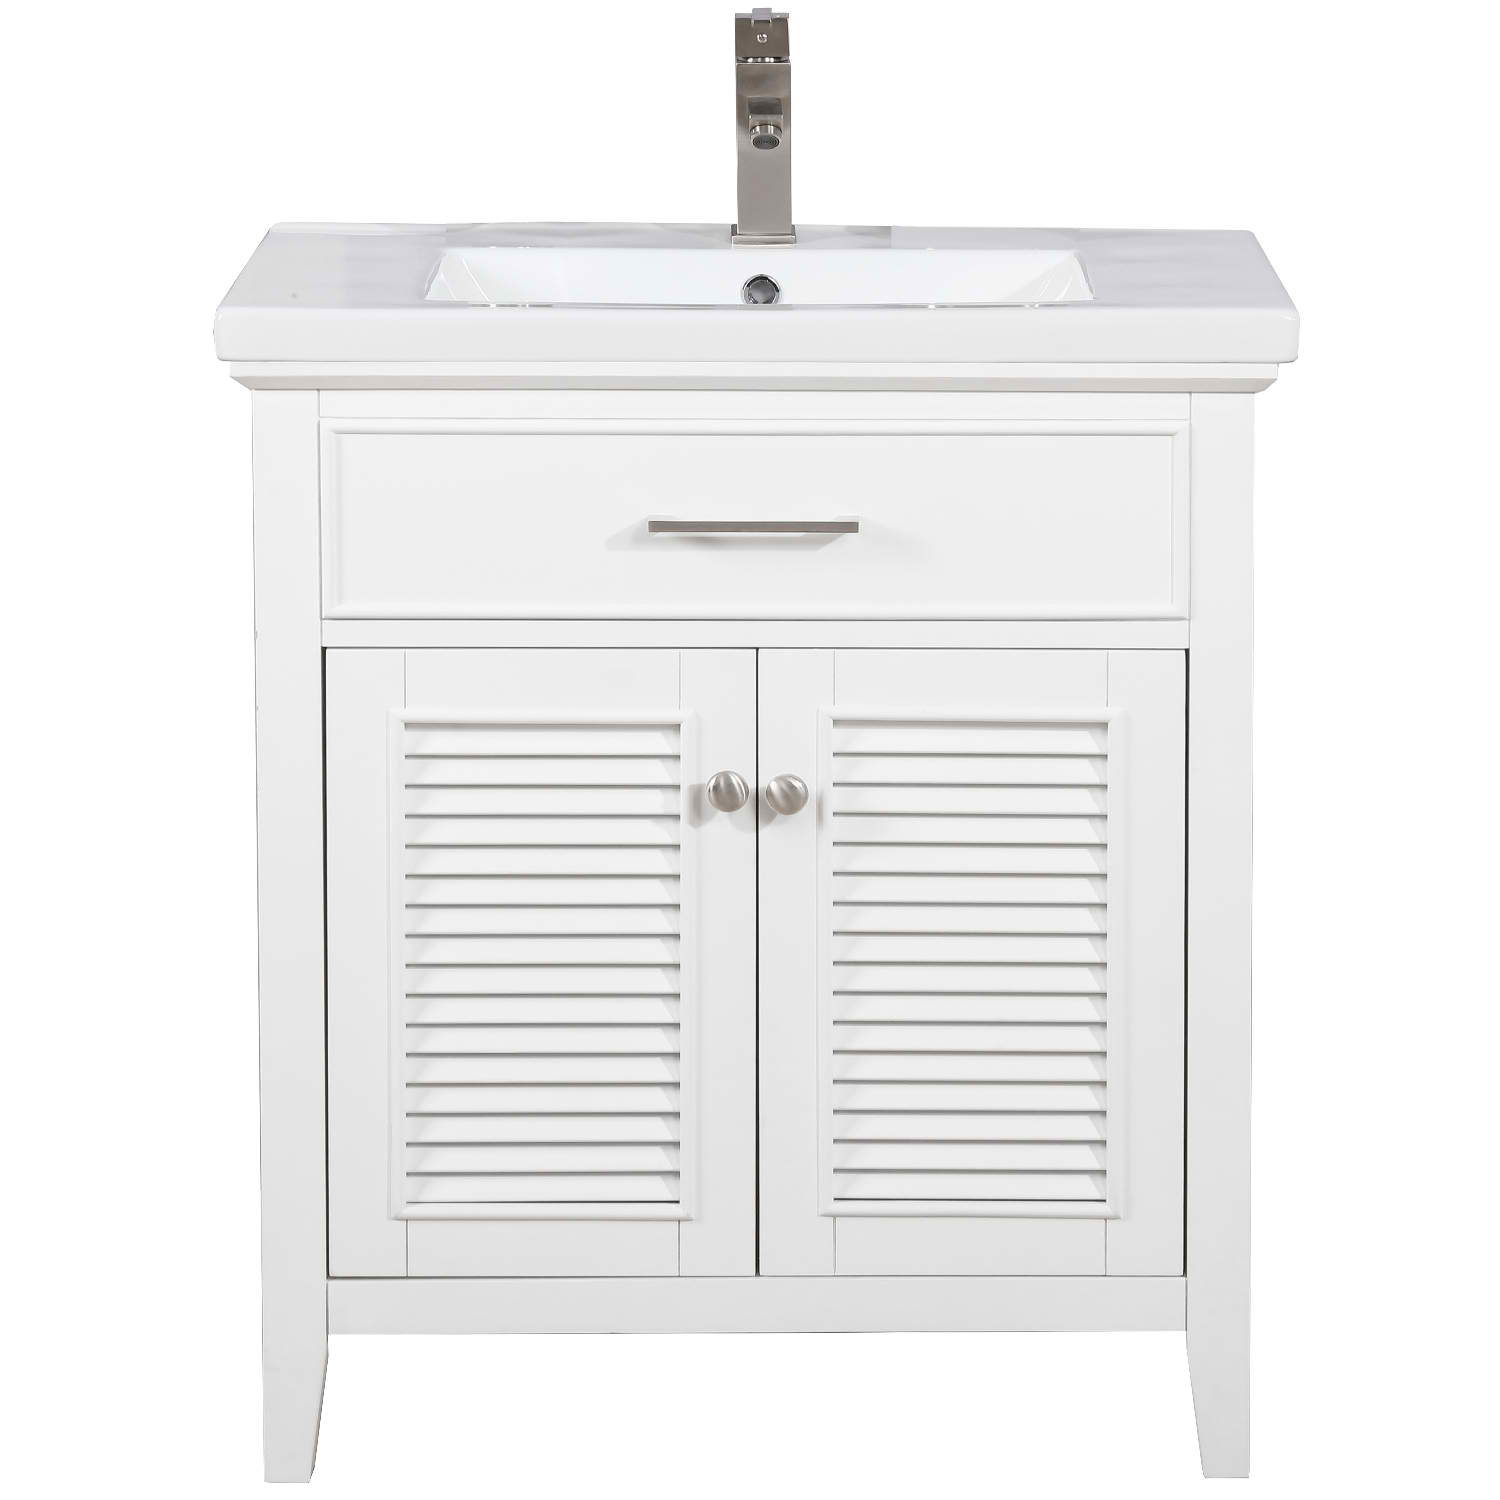 "Transitional 30"" Single Sink Bathroom Vanity with Porcelain Integrated Counterop in White Finish"